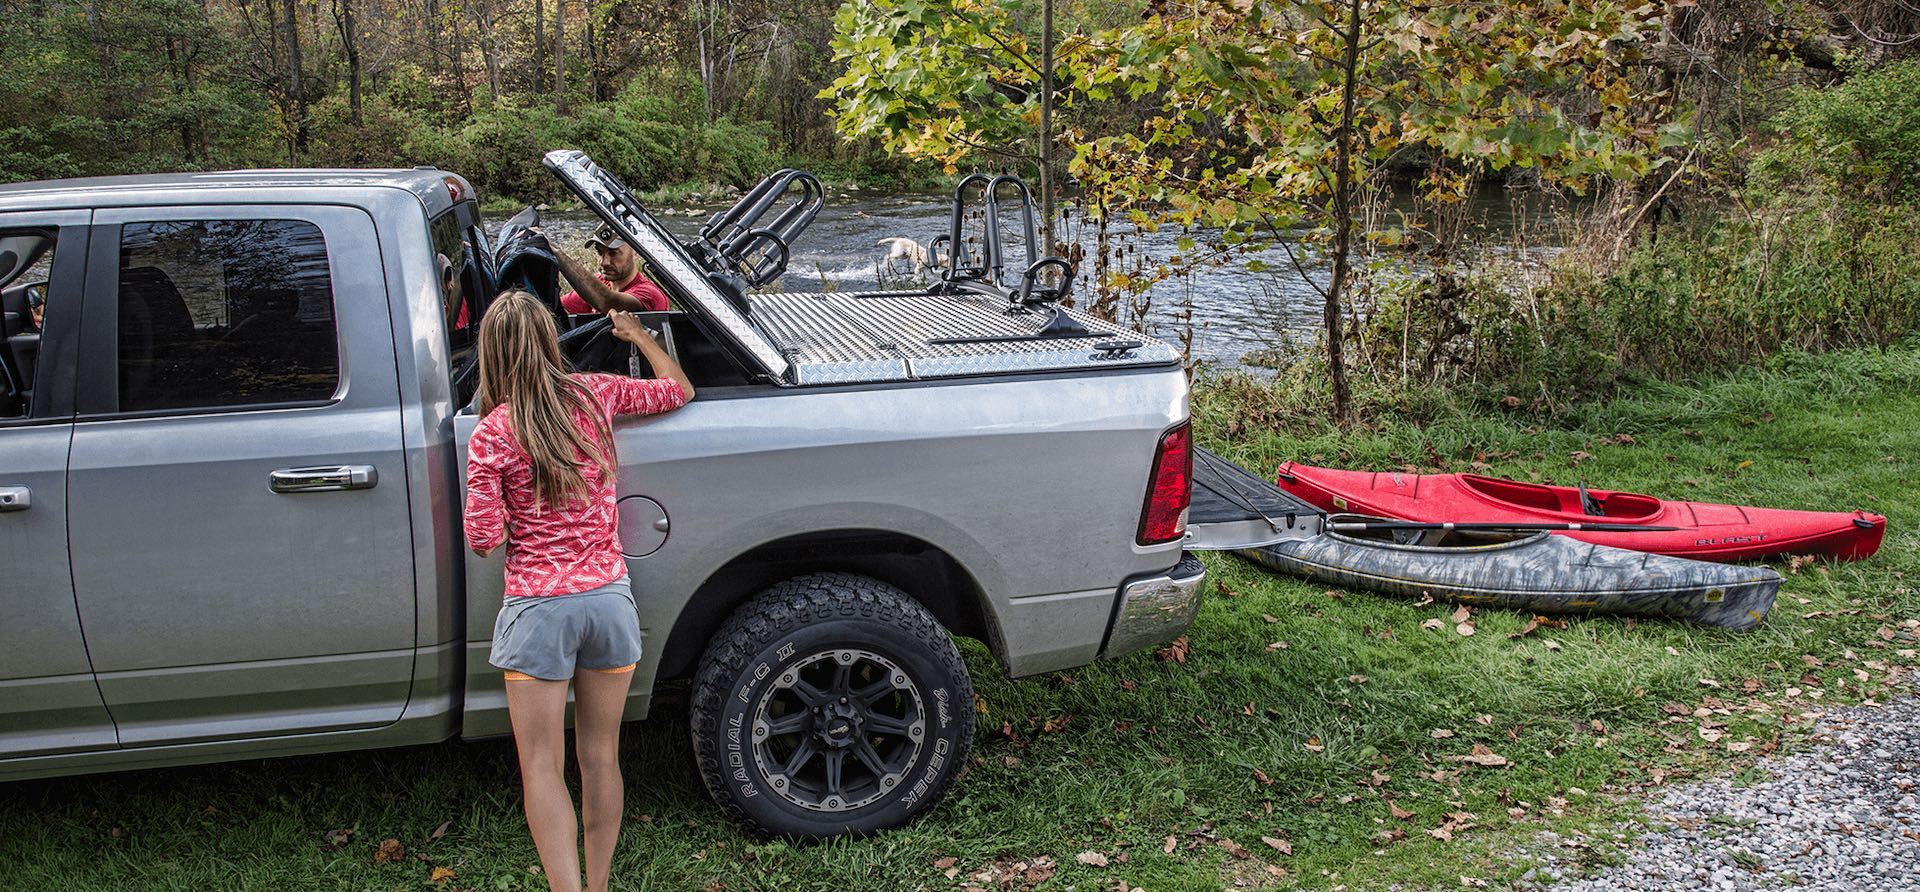 DiamondBack SE rugged metal bed cover and kayak racks on Ram pickup